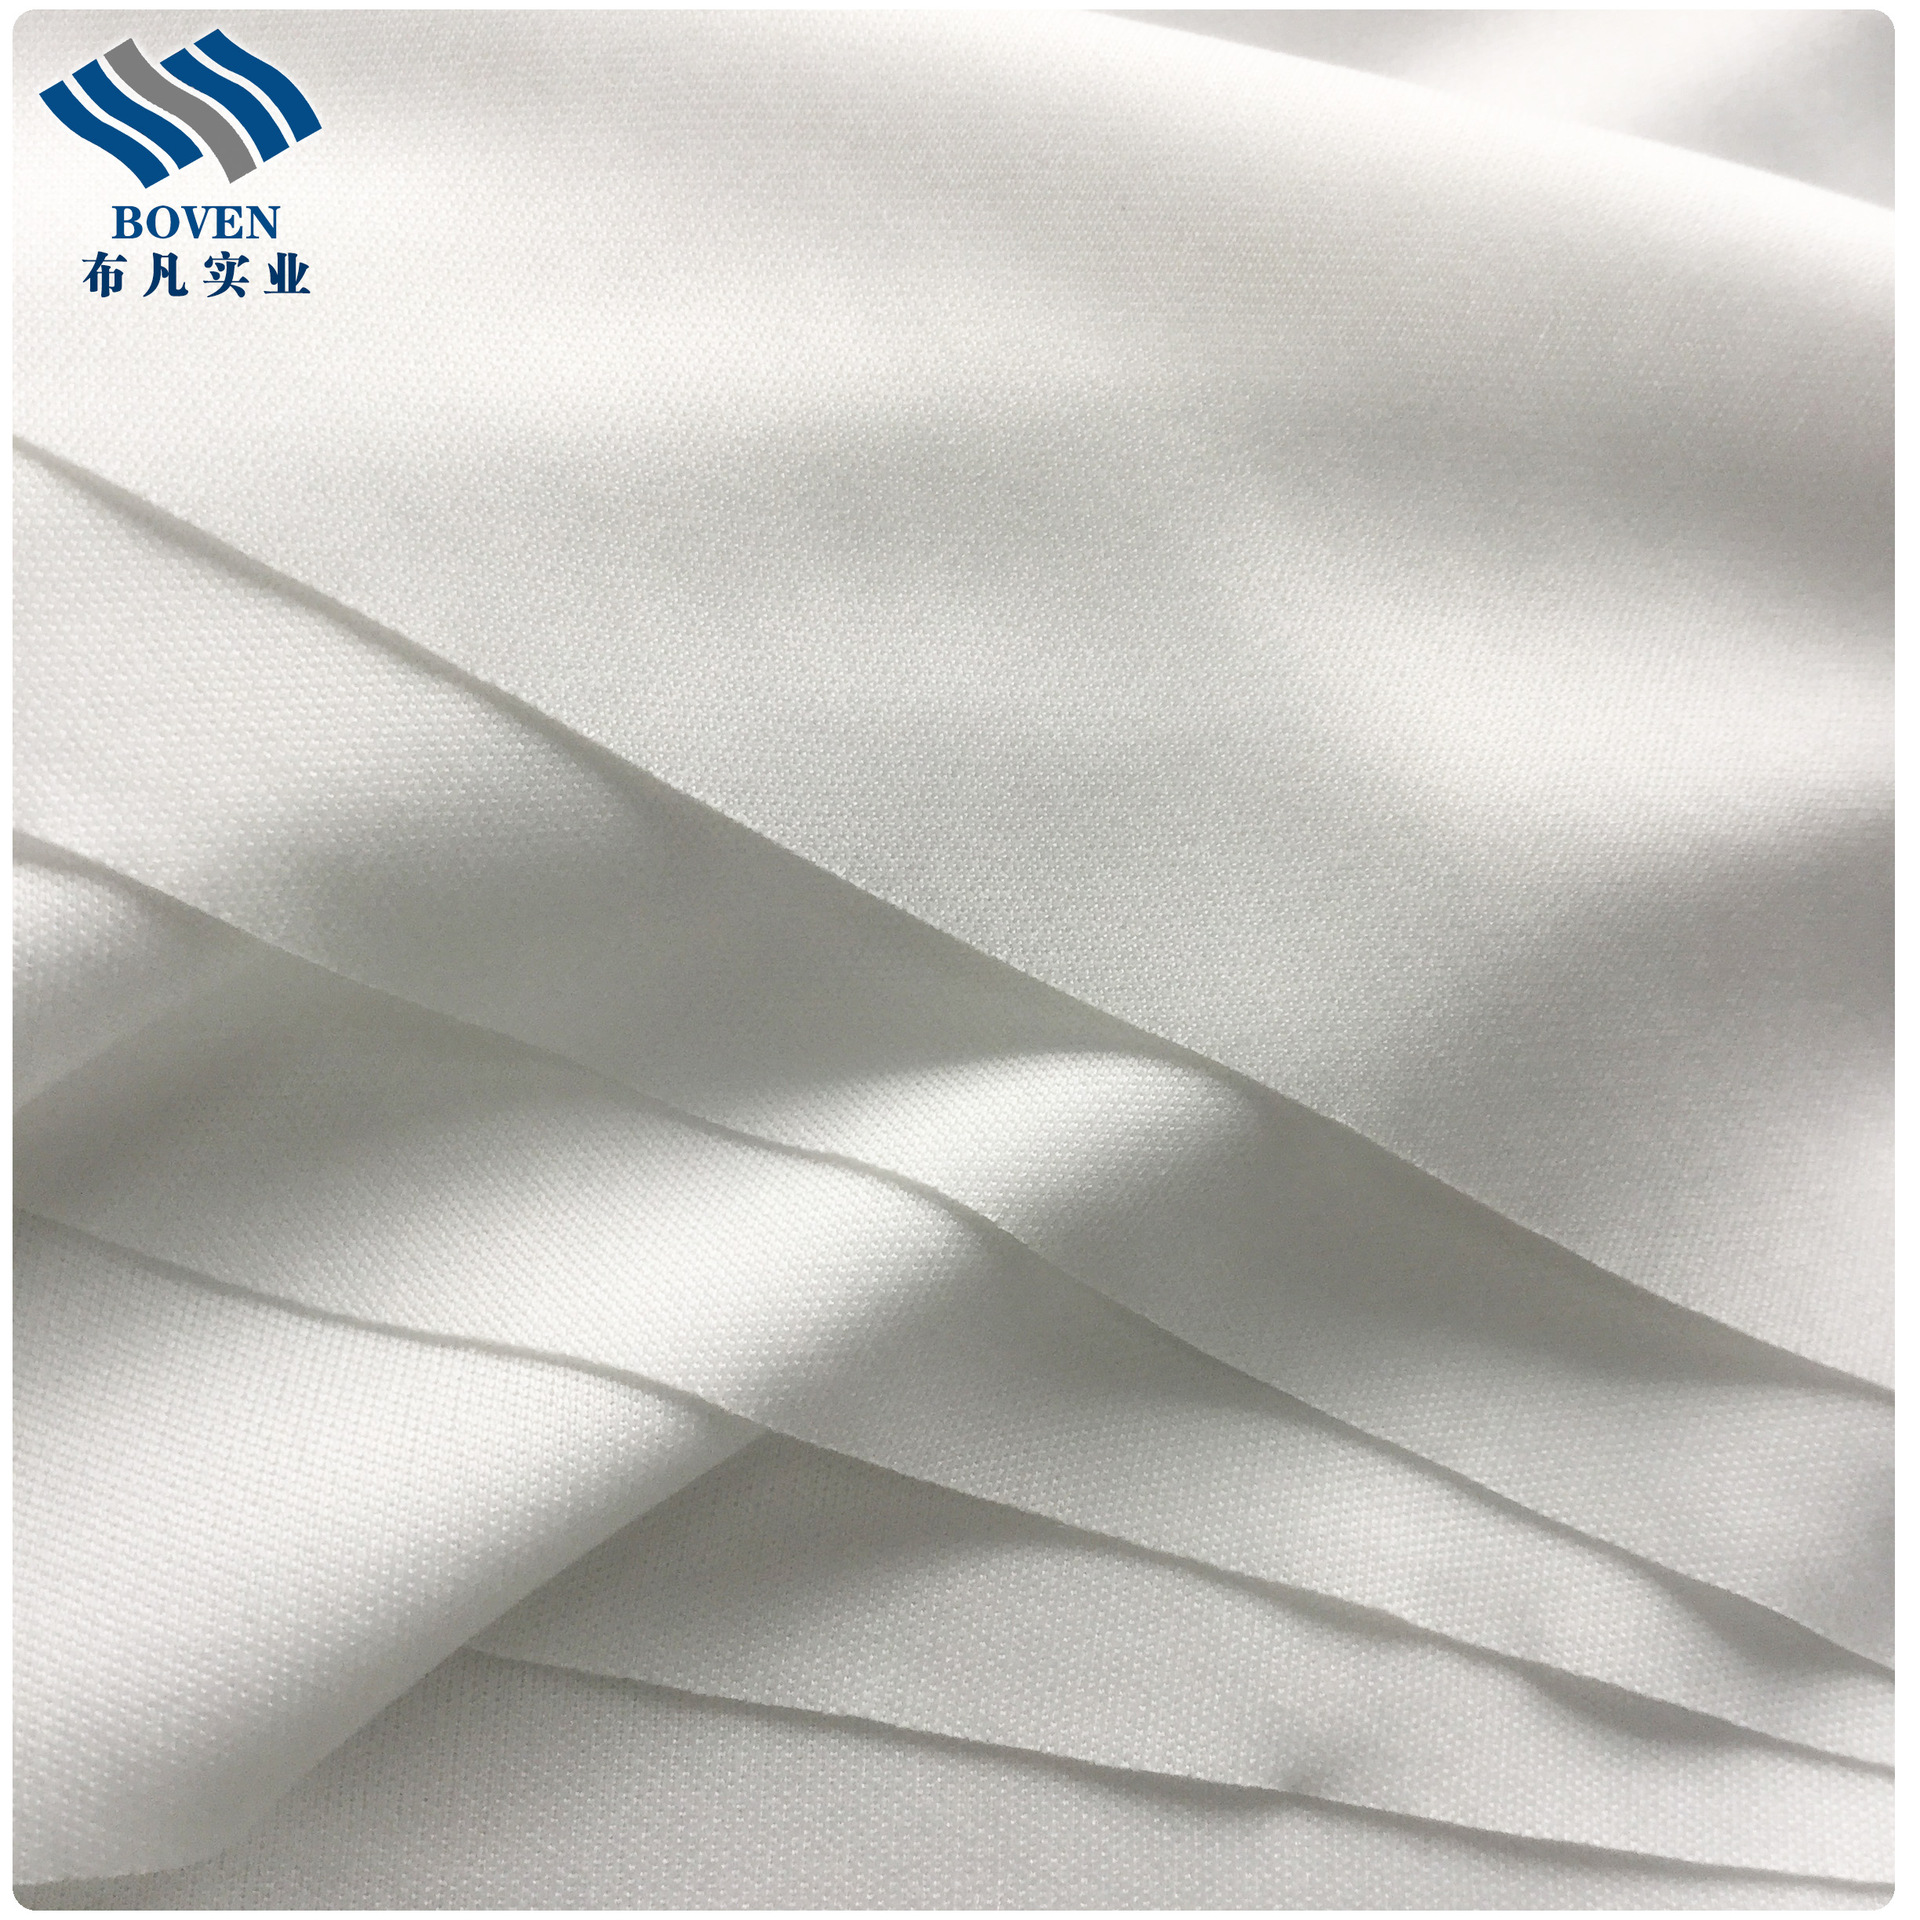 100% polyester Micro-denier lint Free Cleanroom Wipes 100gsm 4009LE  9x9 Inch Laser Cut  Industrial wiper